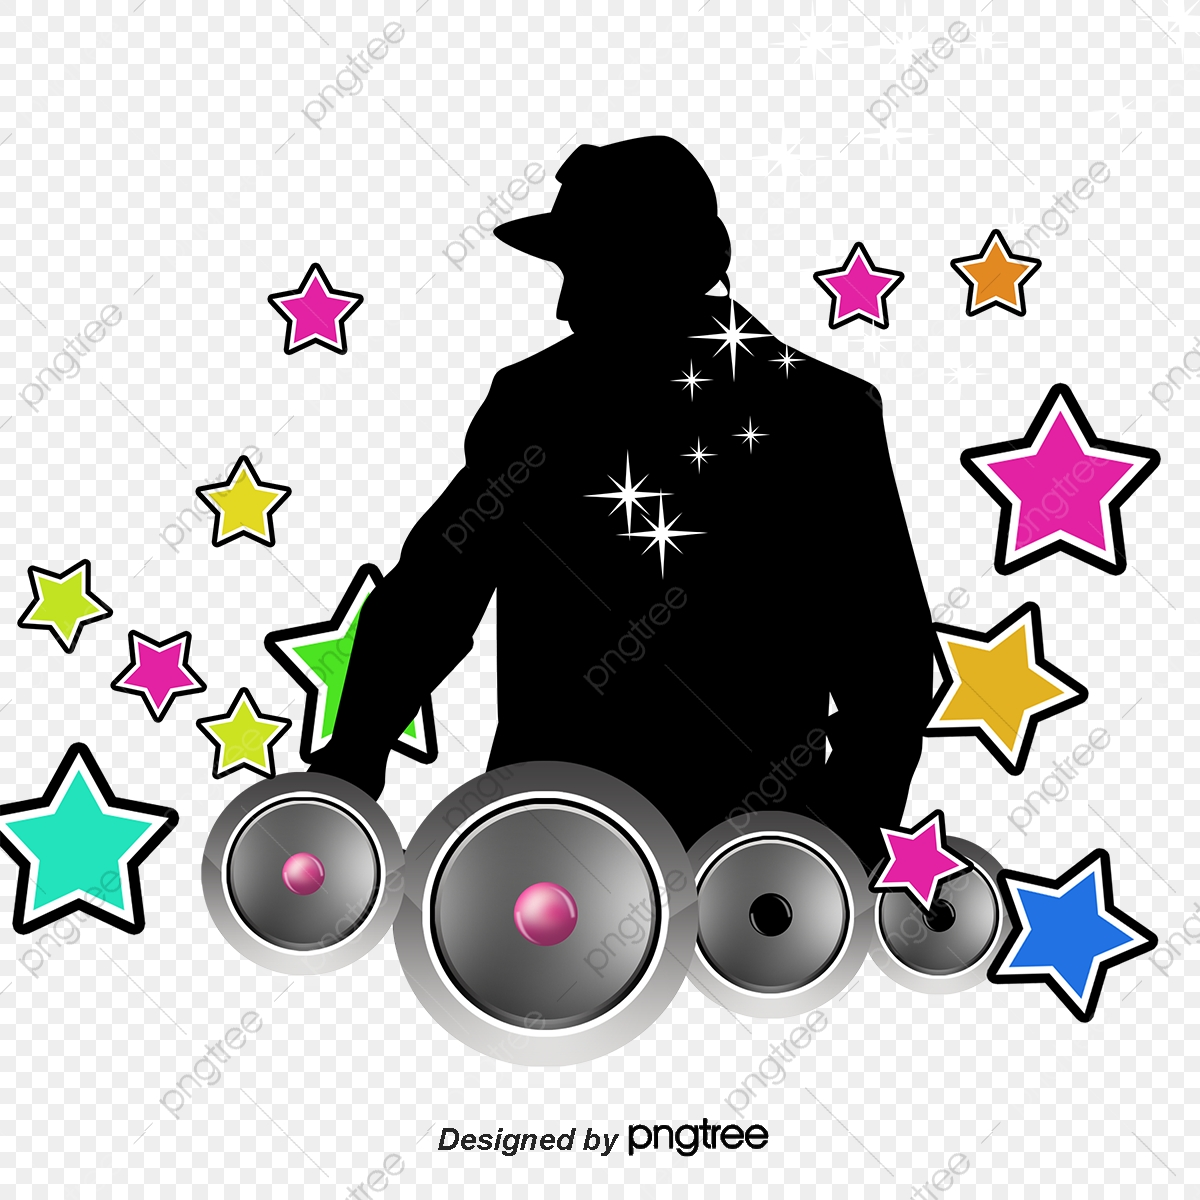 Dj Vector With Headset, With A Headset, Dj Vector, Music PNG and.